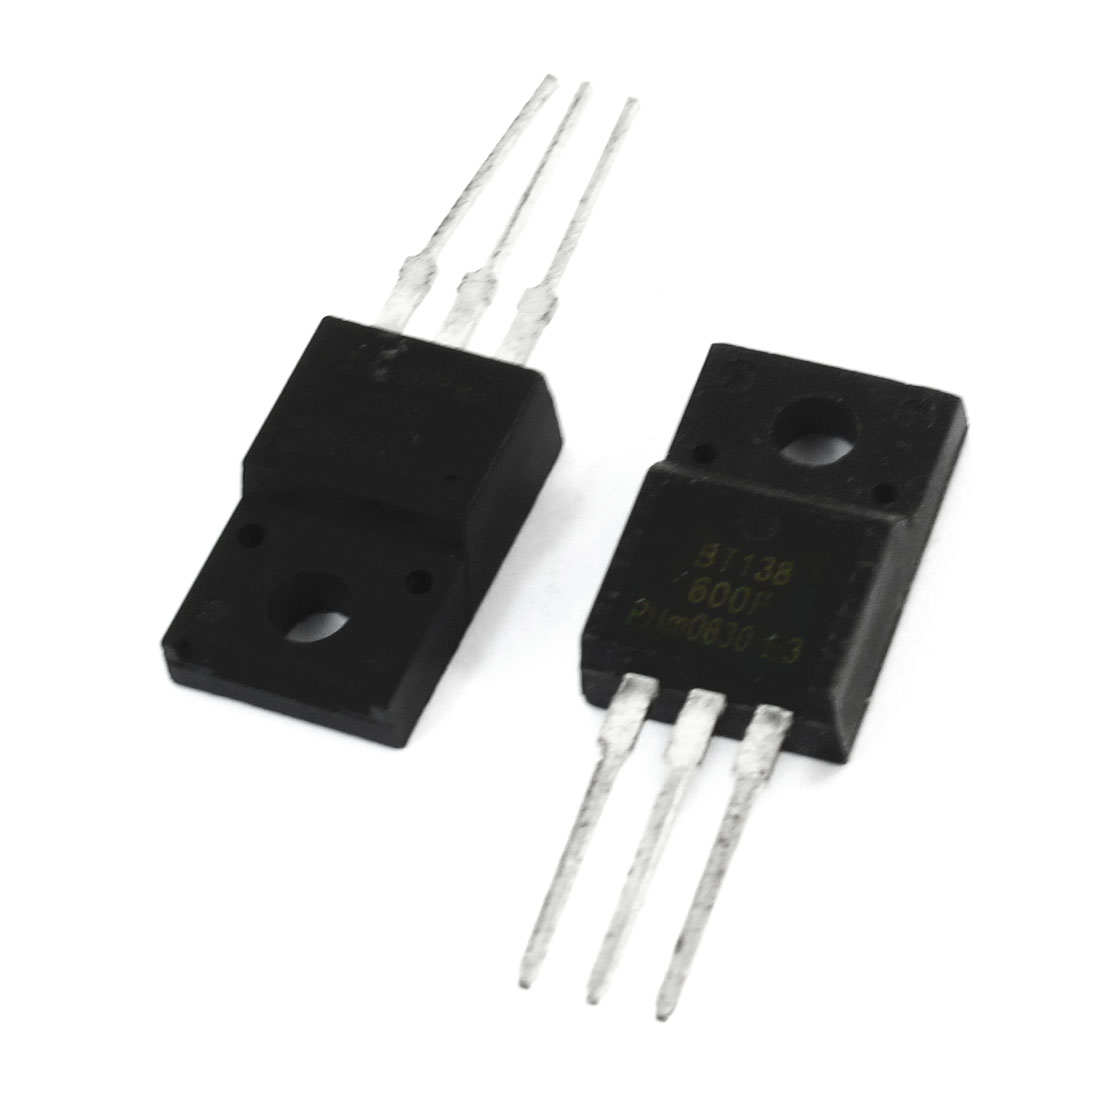 2 Pcs BT138-600F 600V 12Amp High Switching Speed Silicon Transistor